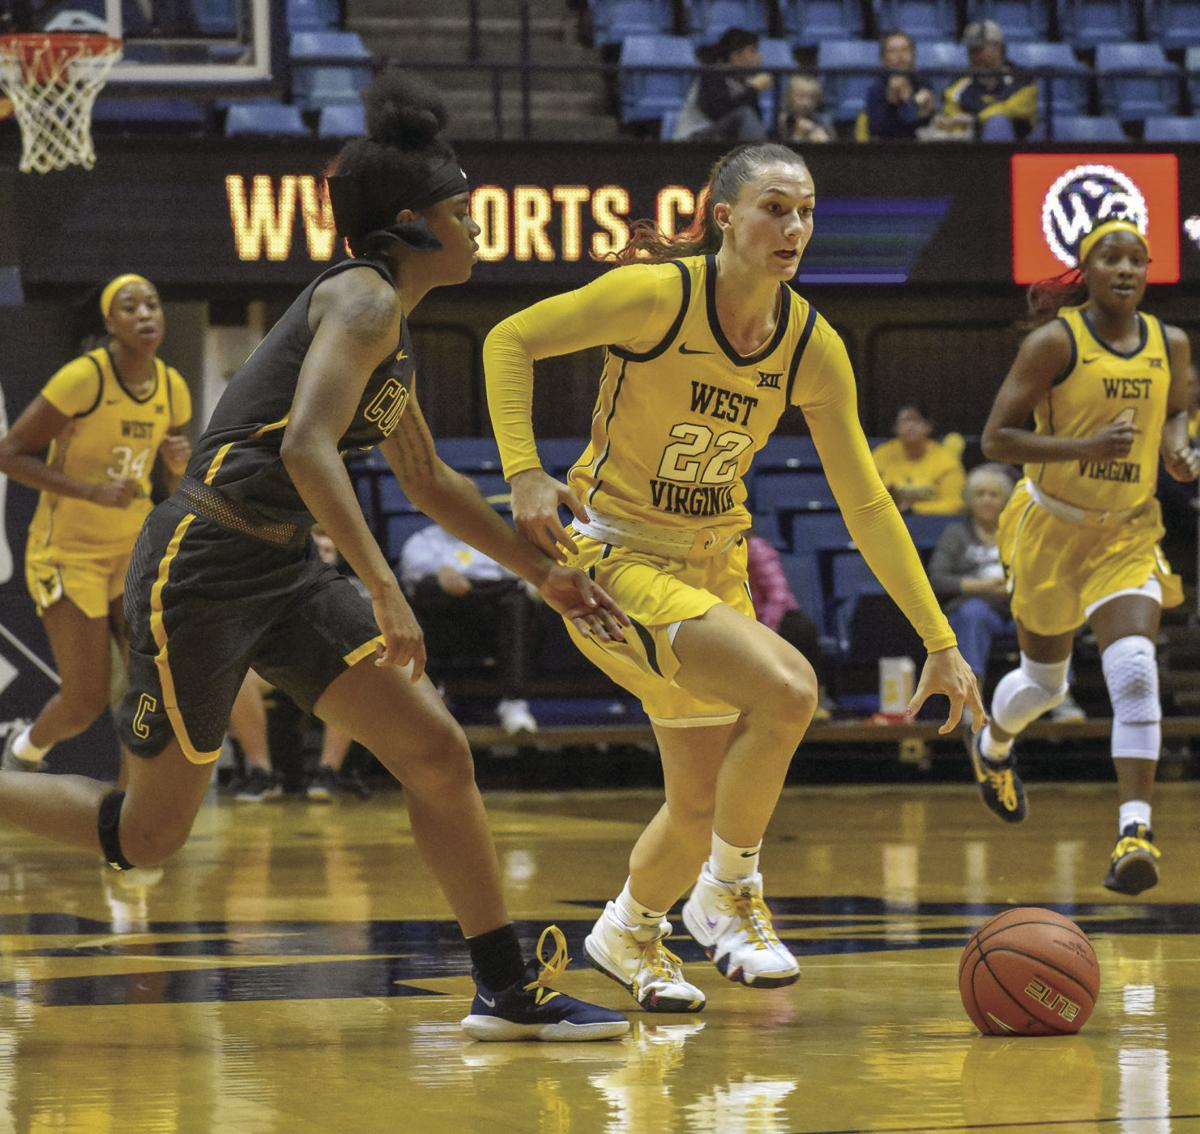 katrina pardee during the coppin state game